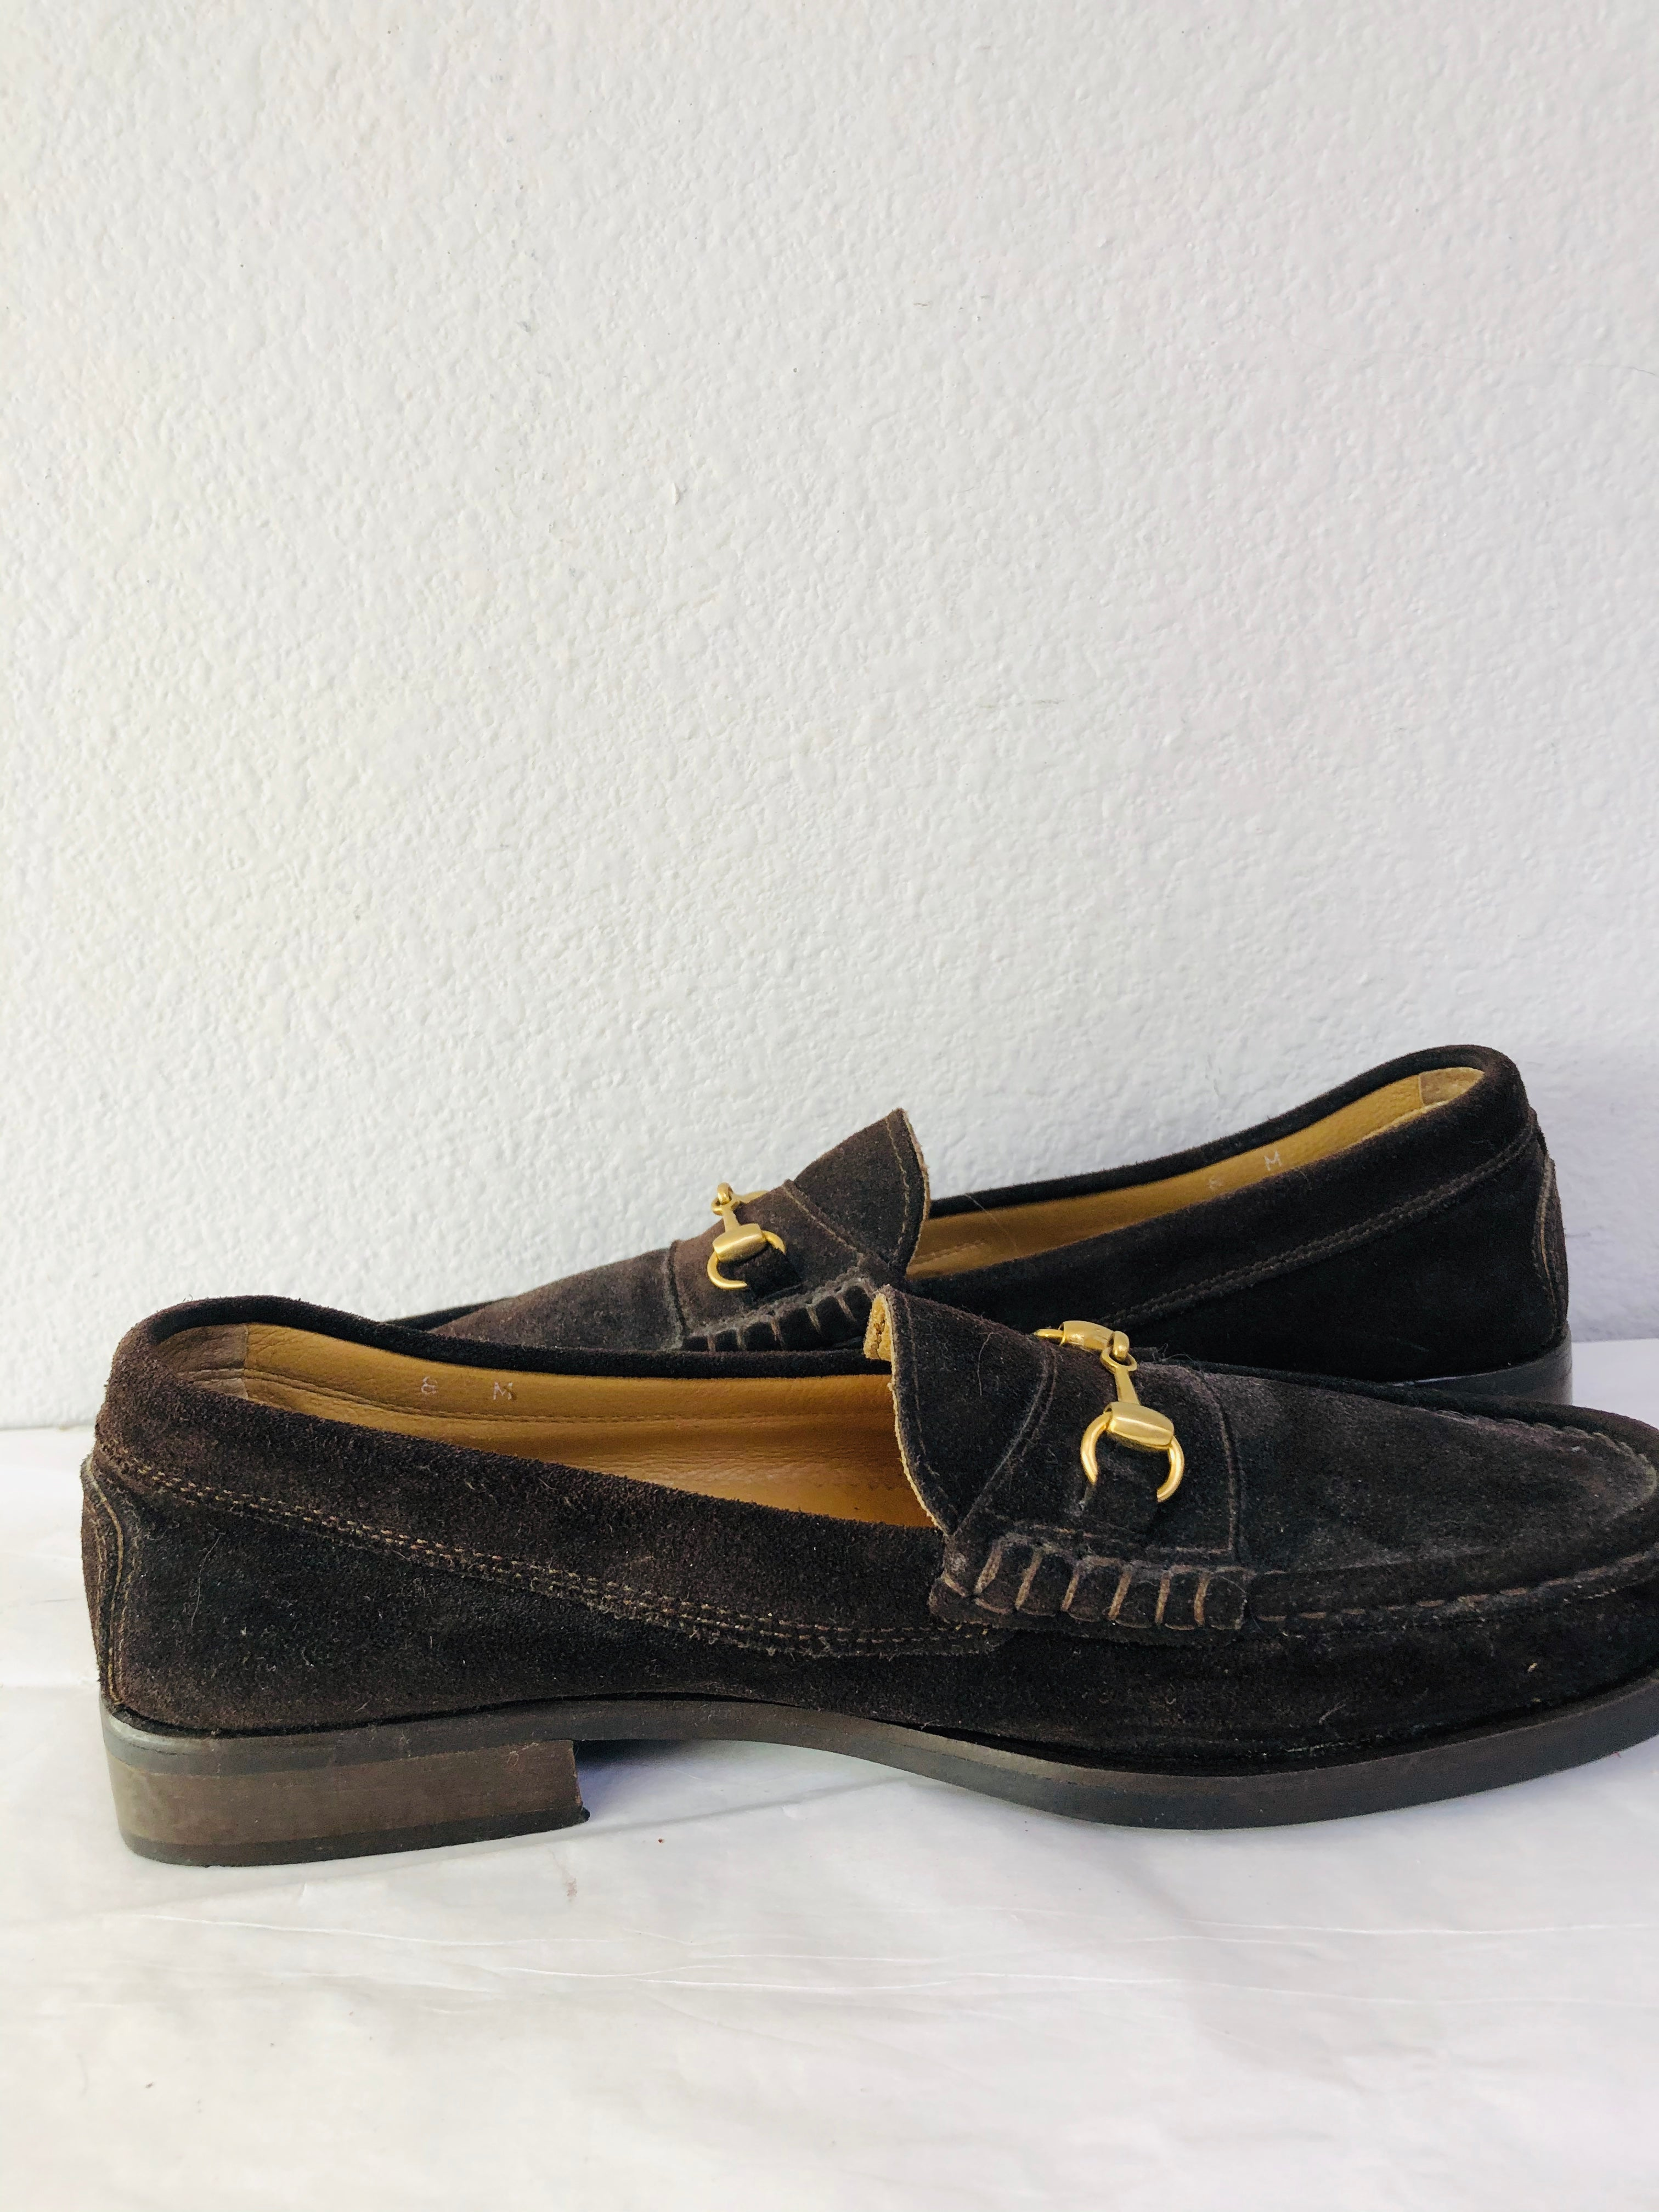 Ann Taylor Loafers - Vanity's Vault